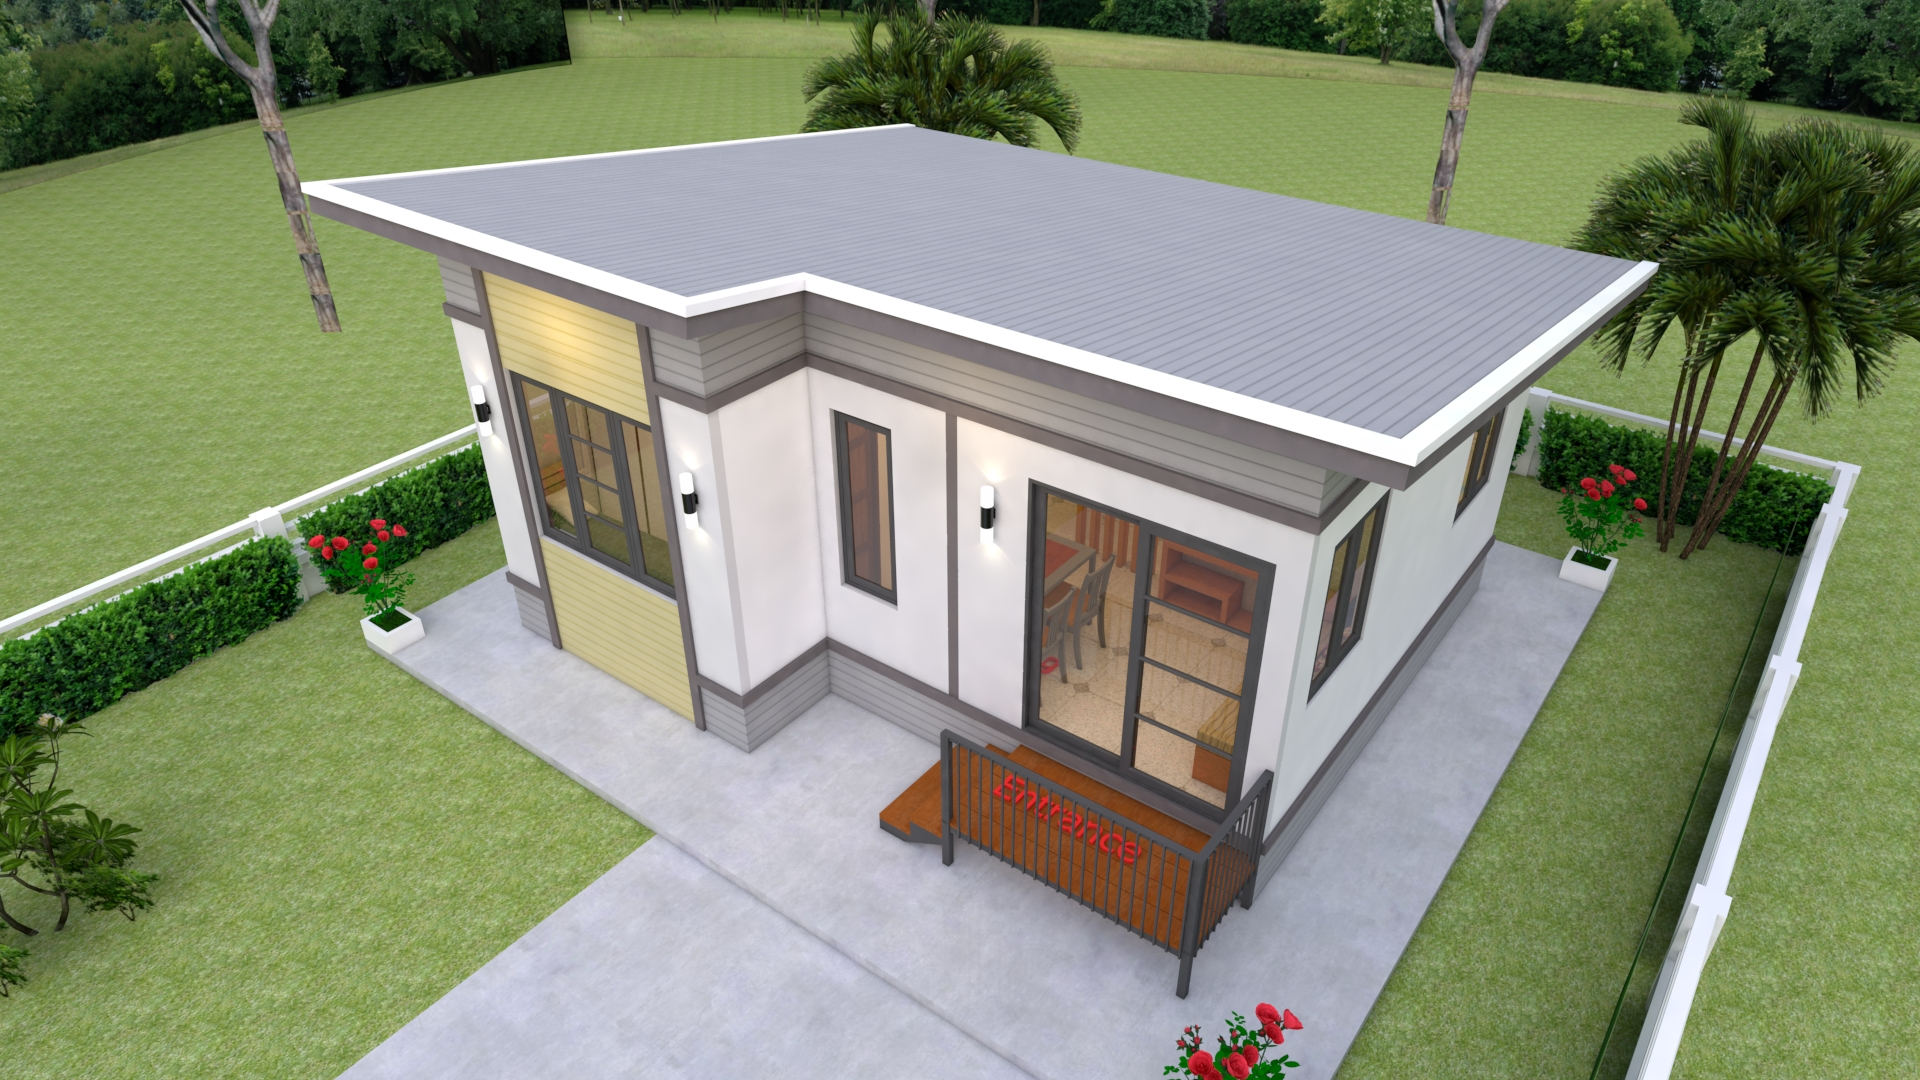 Simple Small House Design 7x6 Meter 23x20 Feet 2 Beds 4